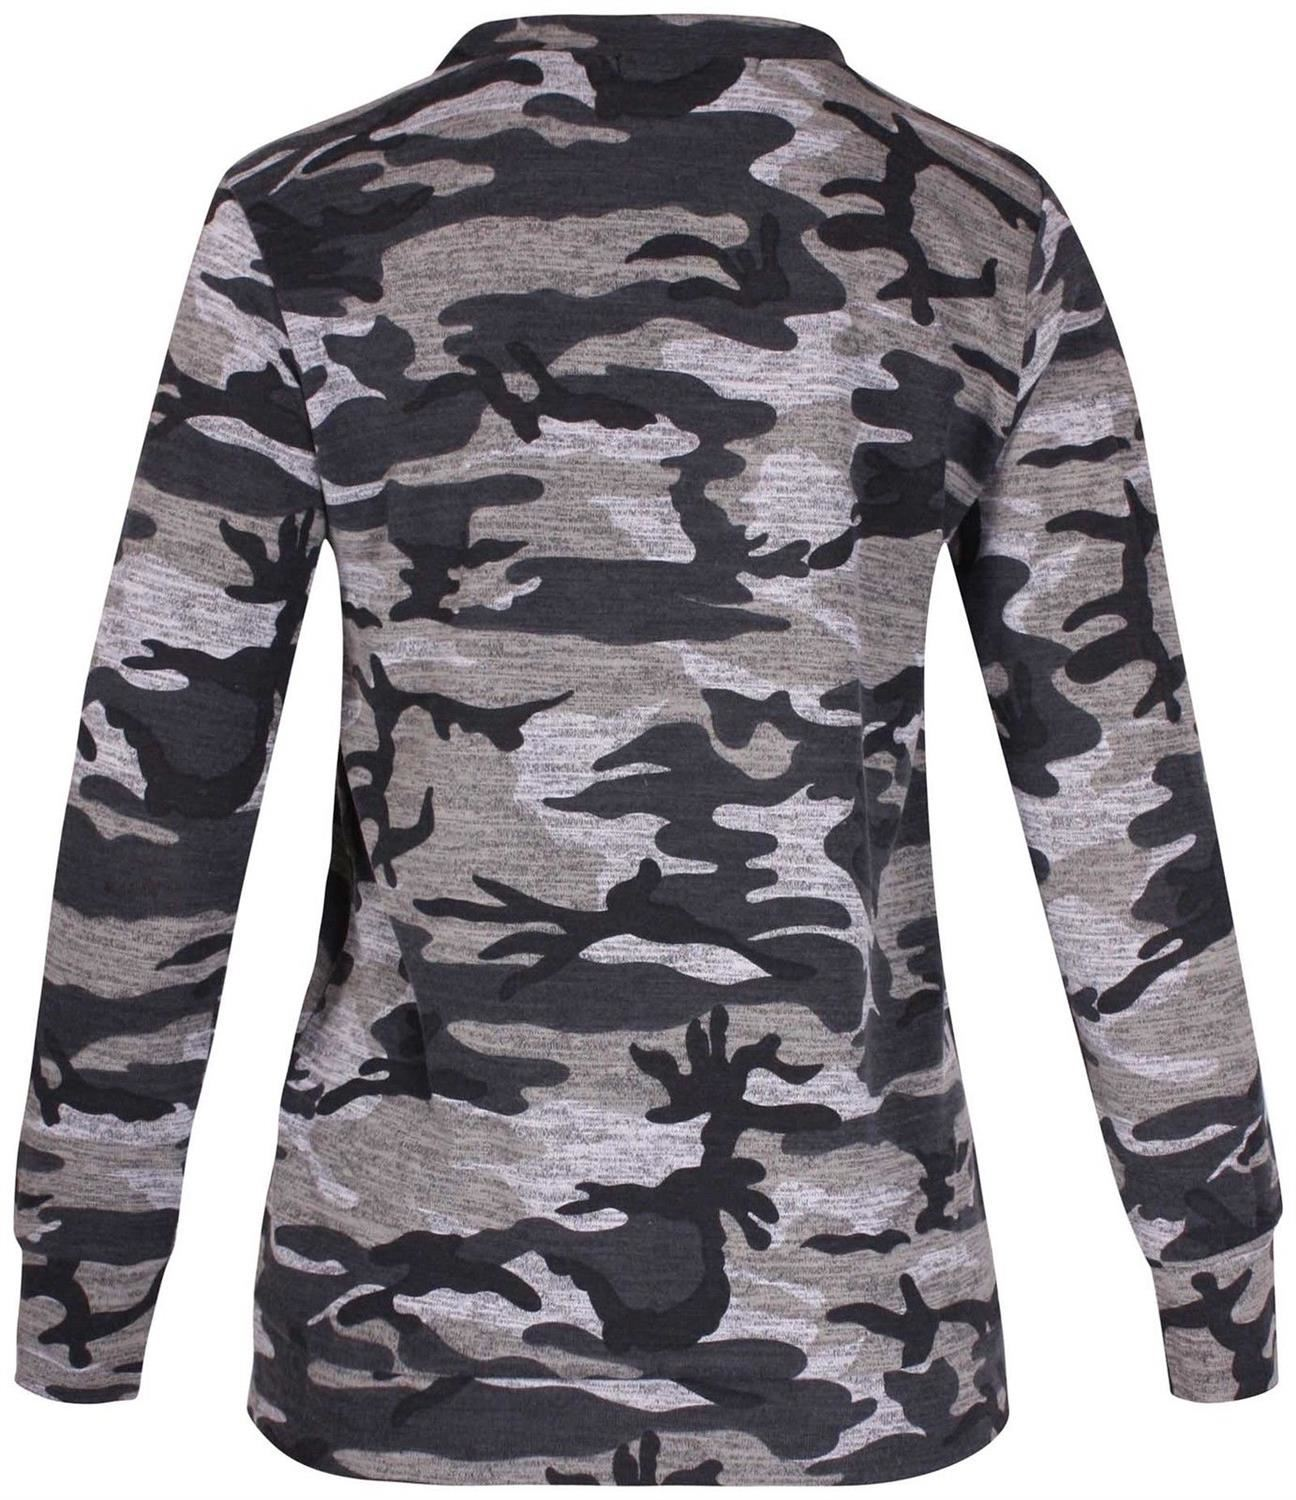 New-Womens-Plus-Size-Army-Sweatshirt-Top-Jogging-Bottom-Tracksuit-Set-16-28 thumbnail 5